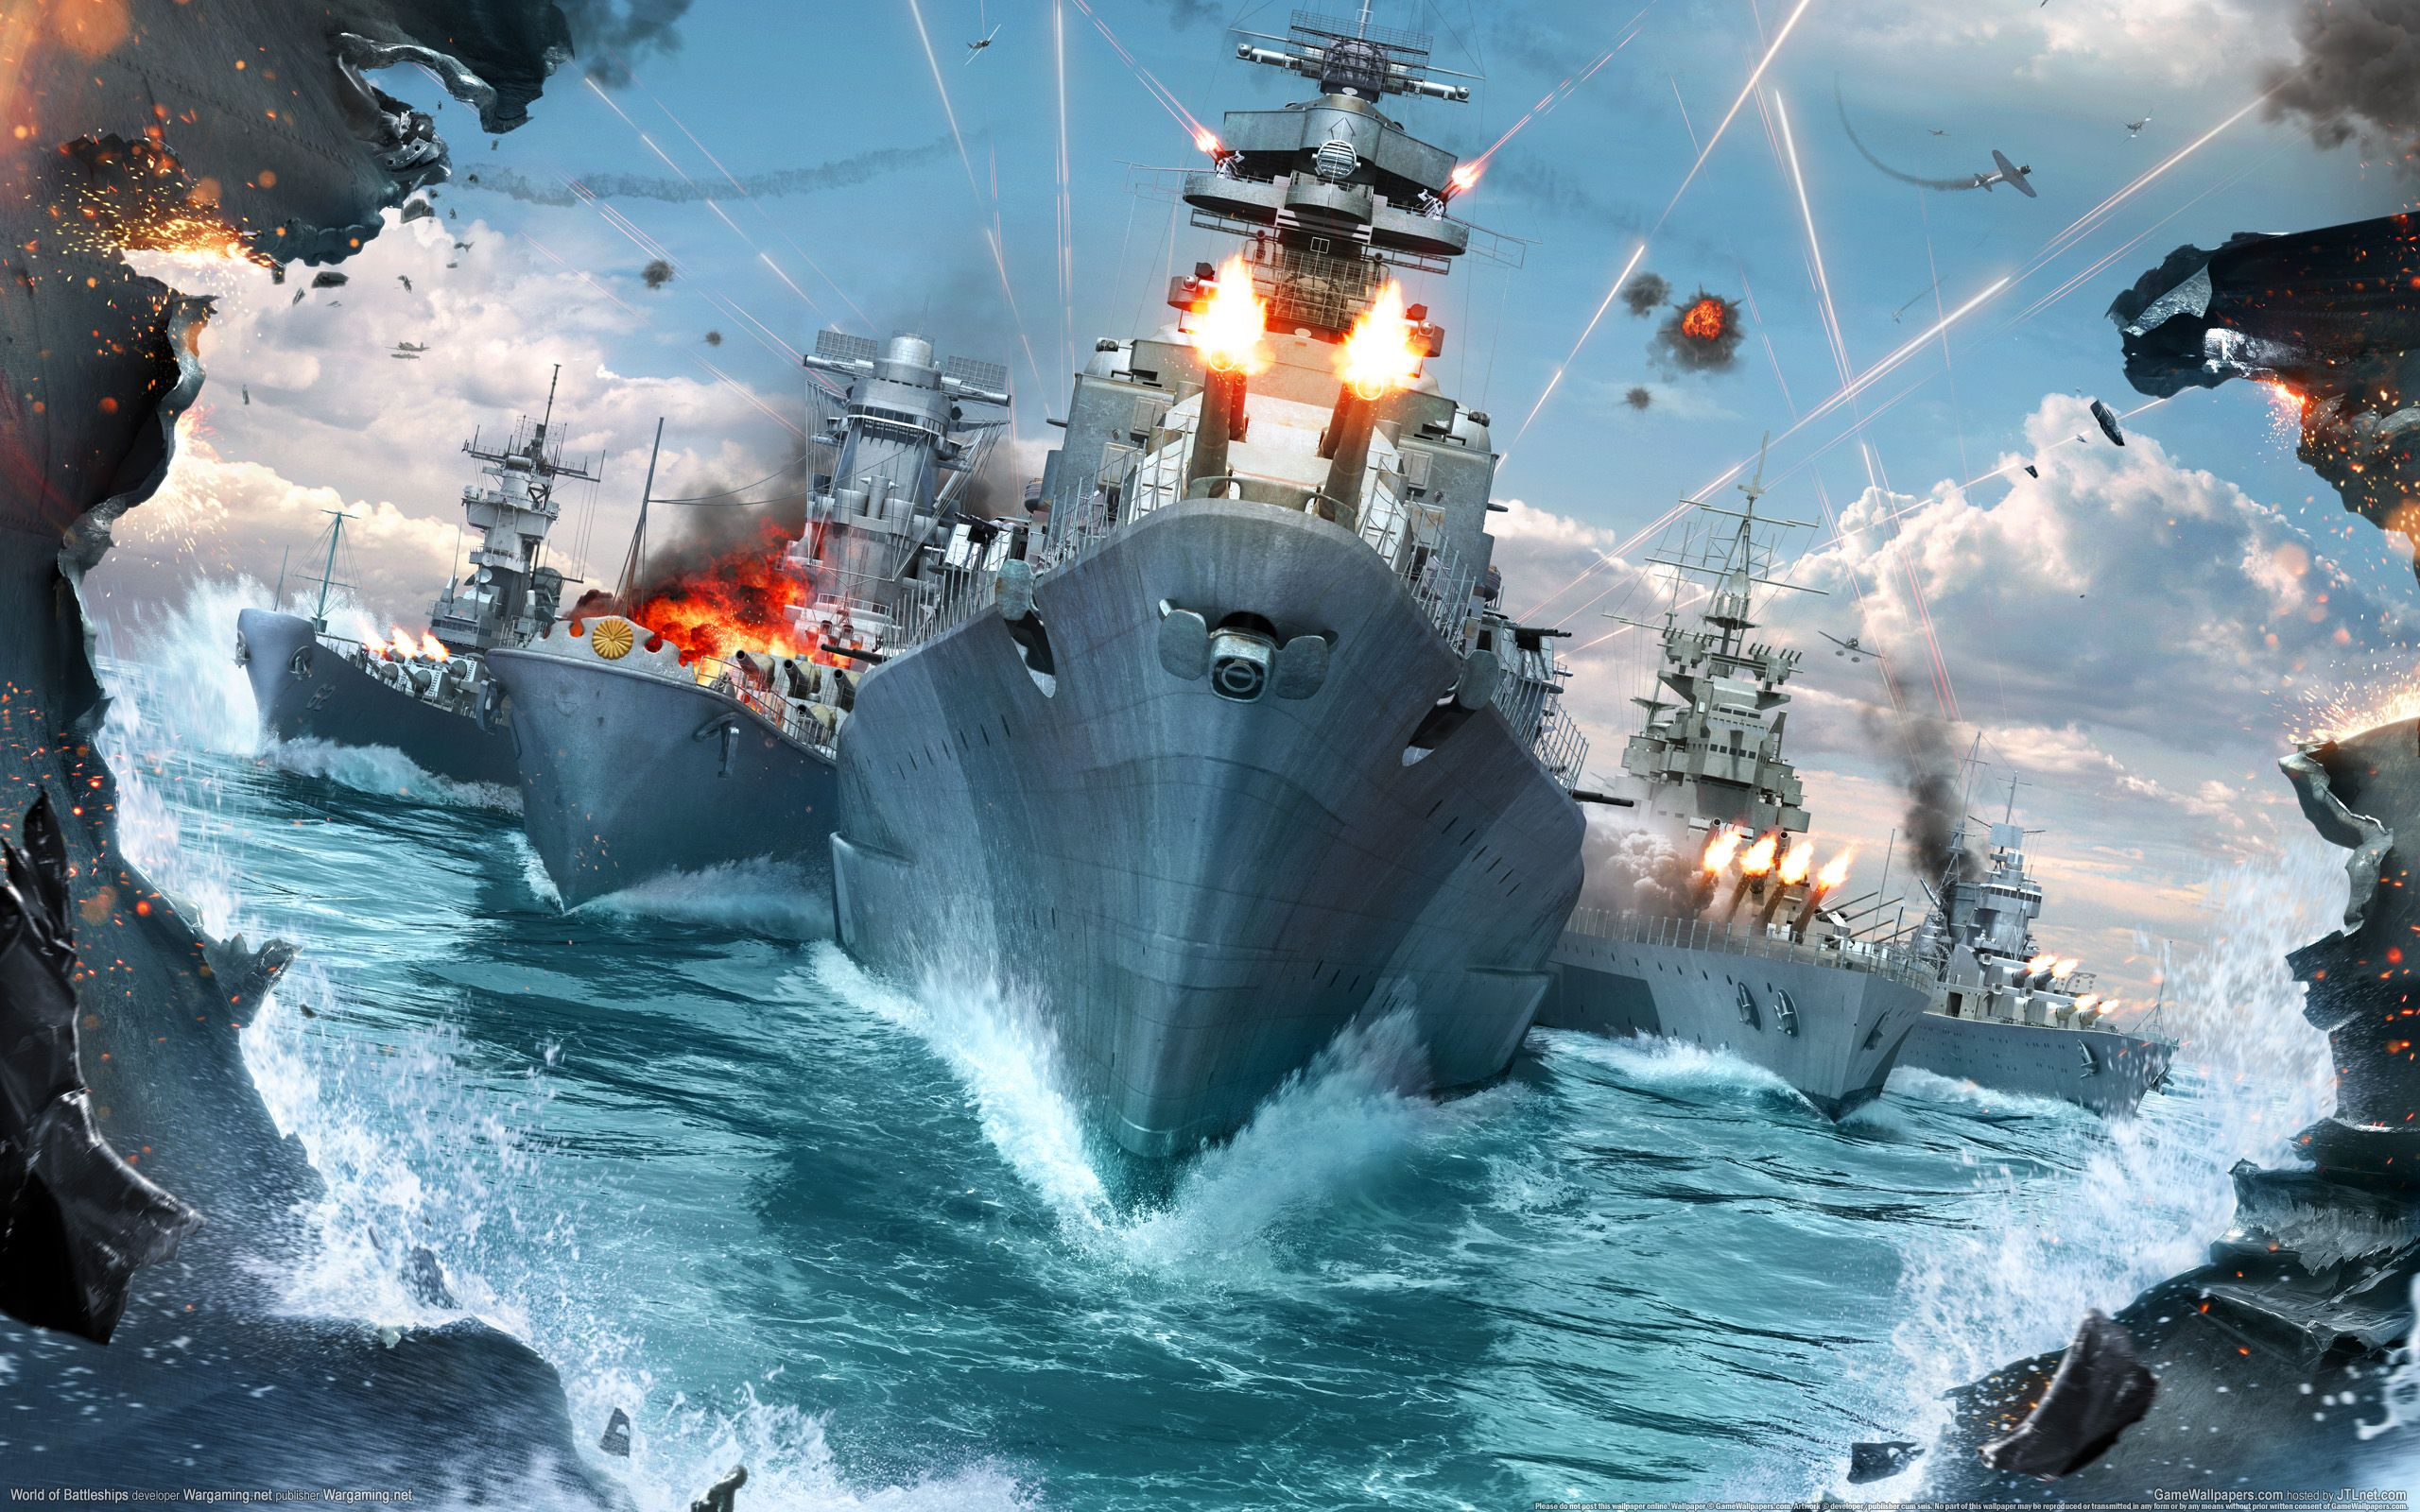 Battleship Wallpaper HD Resolution BK5 World of